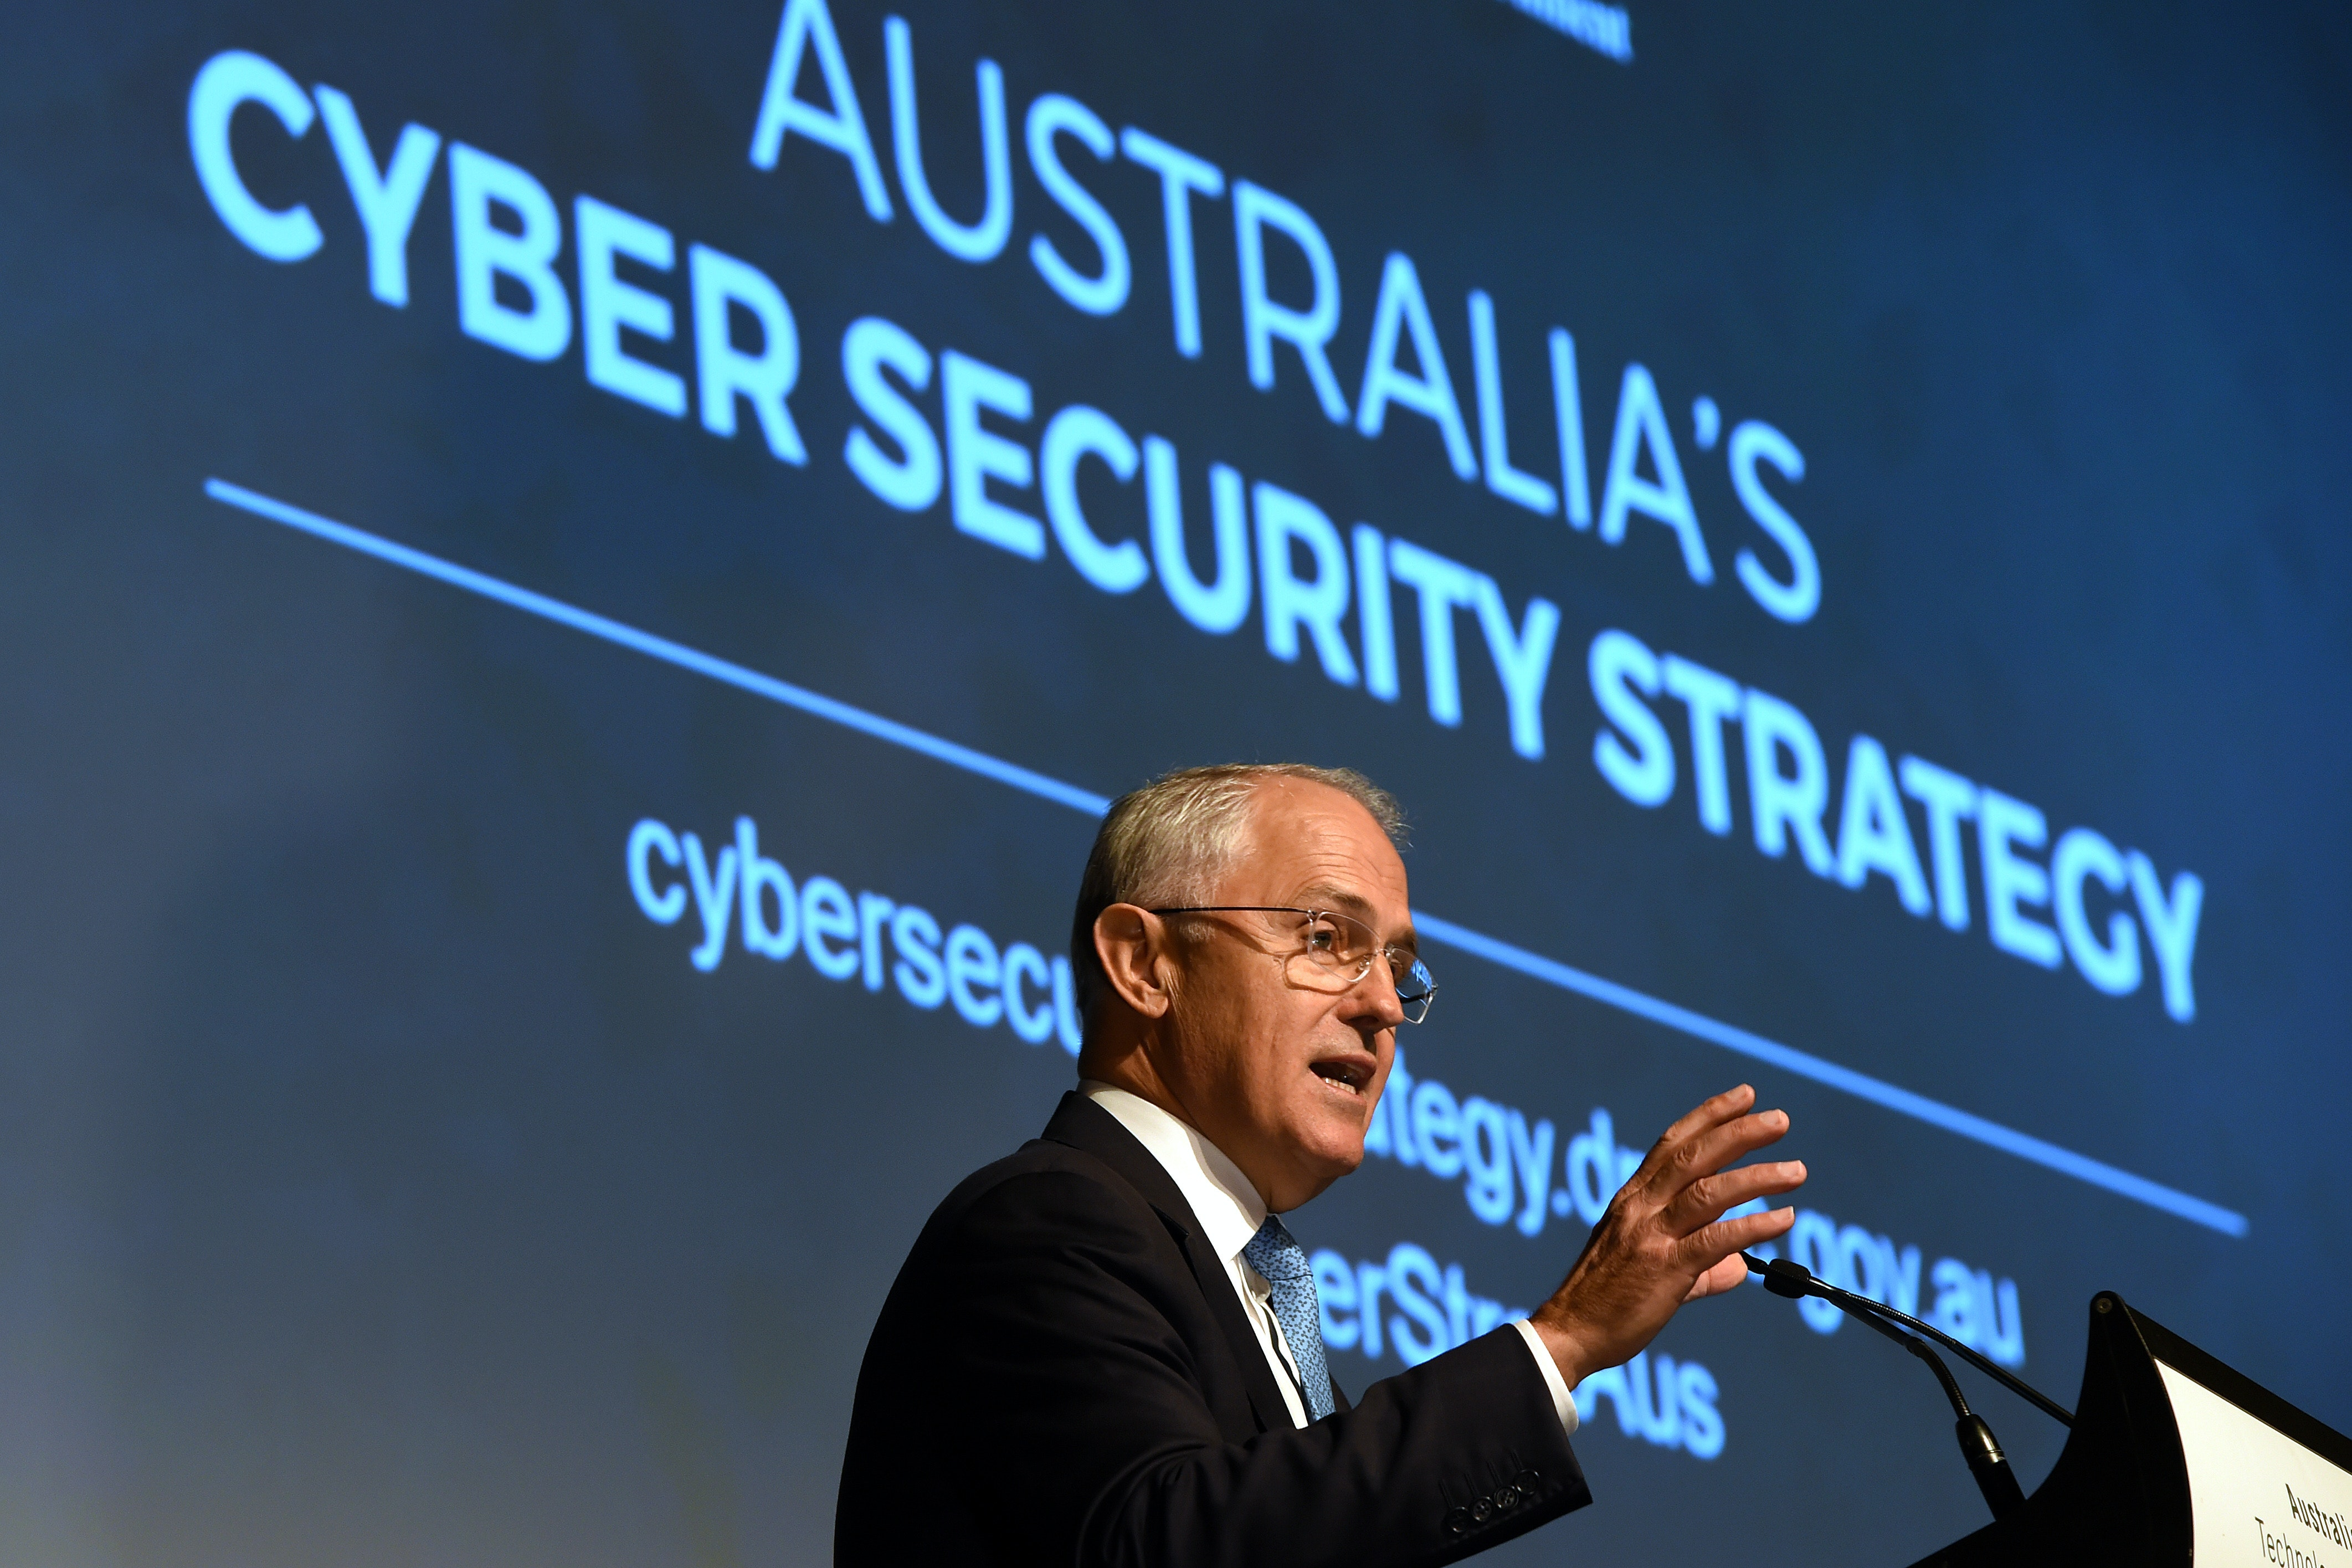 Australia still doesn't see a cyber attack as the menace our allies fear